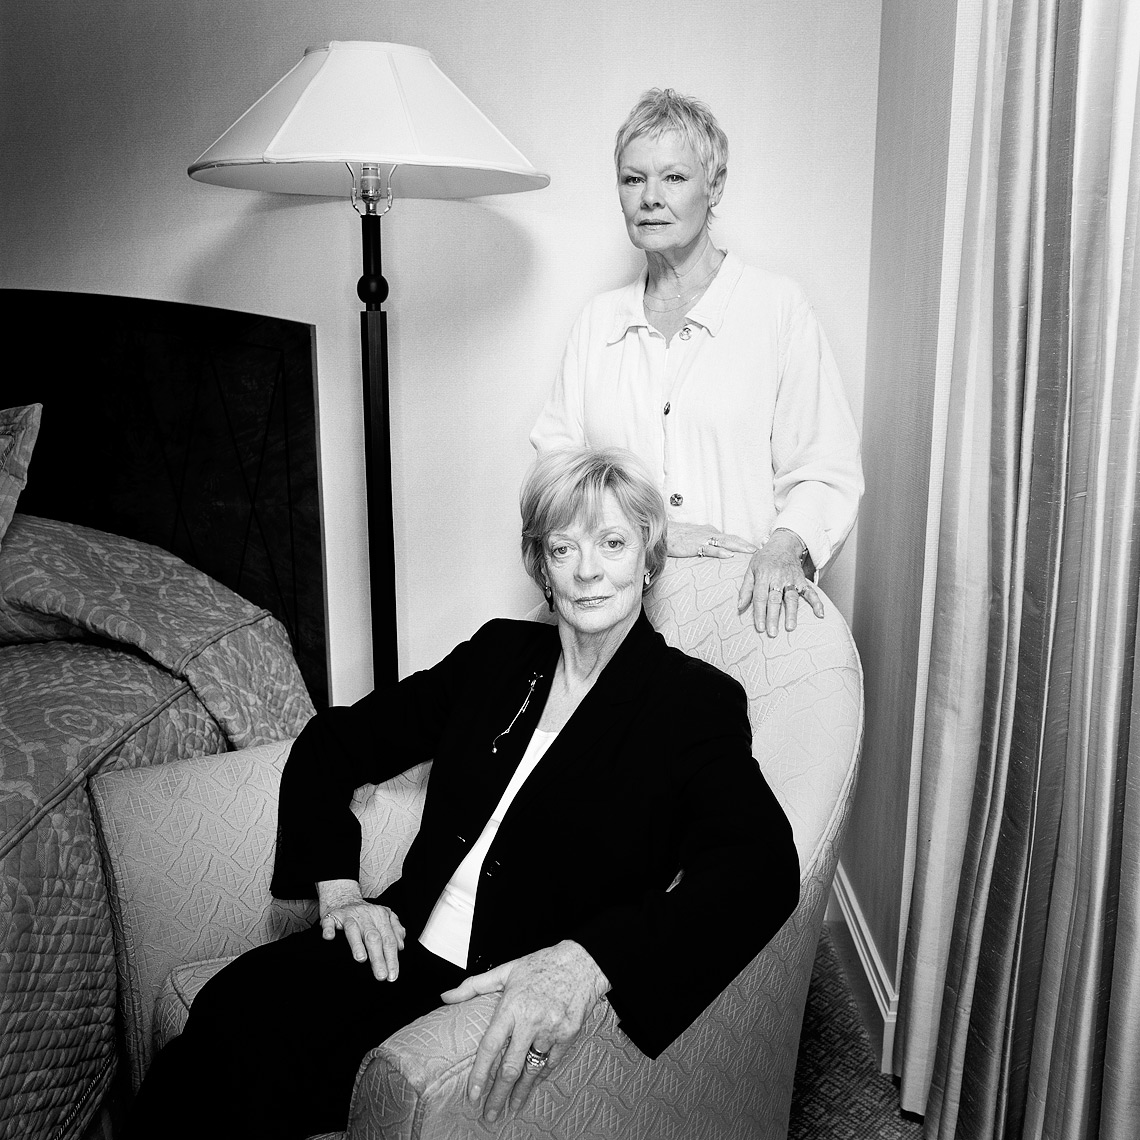 maggie smith & judi dench